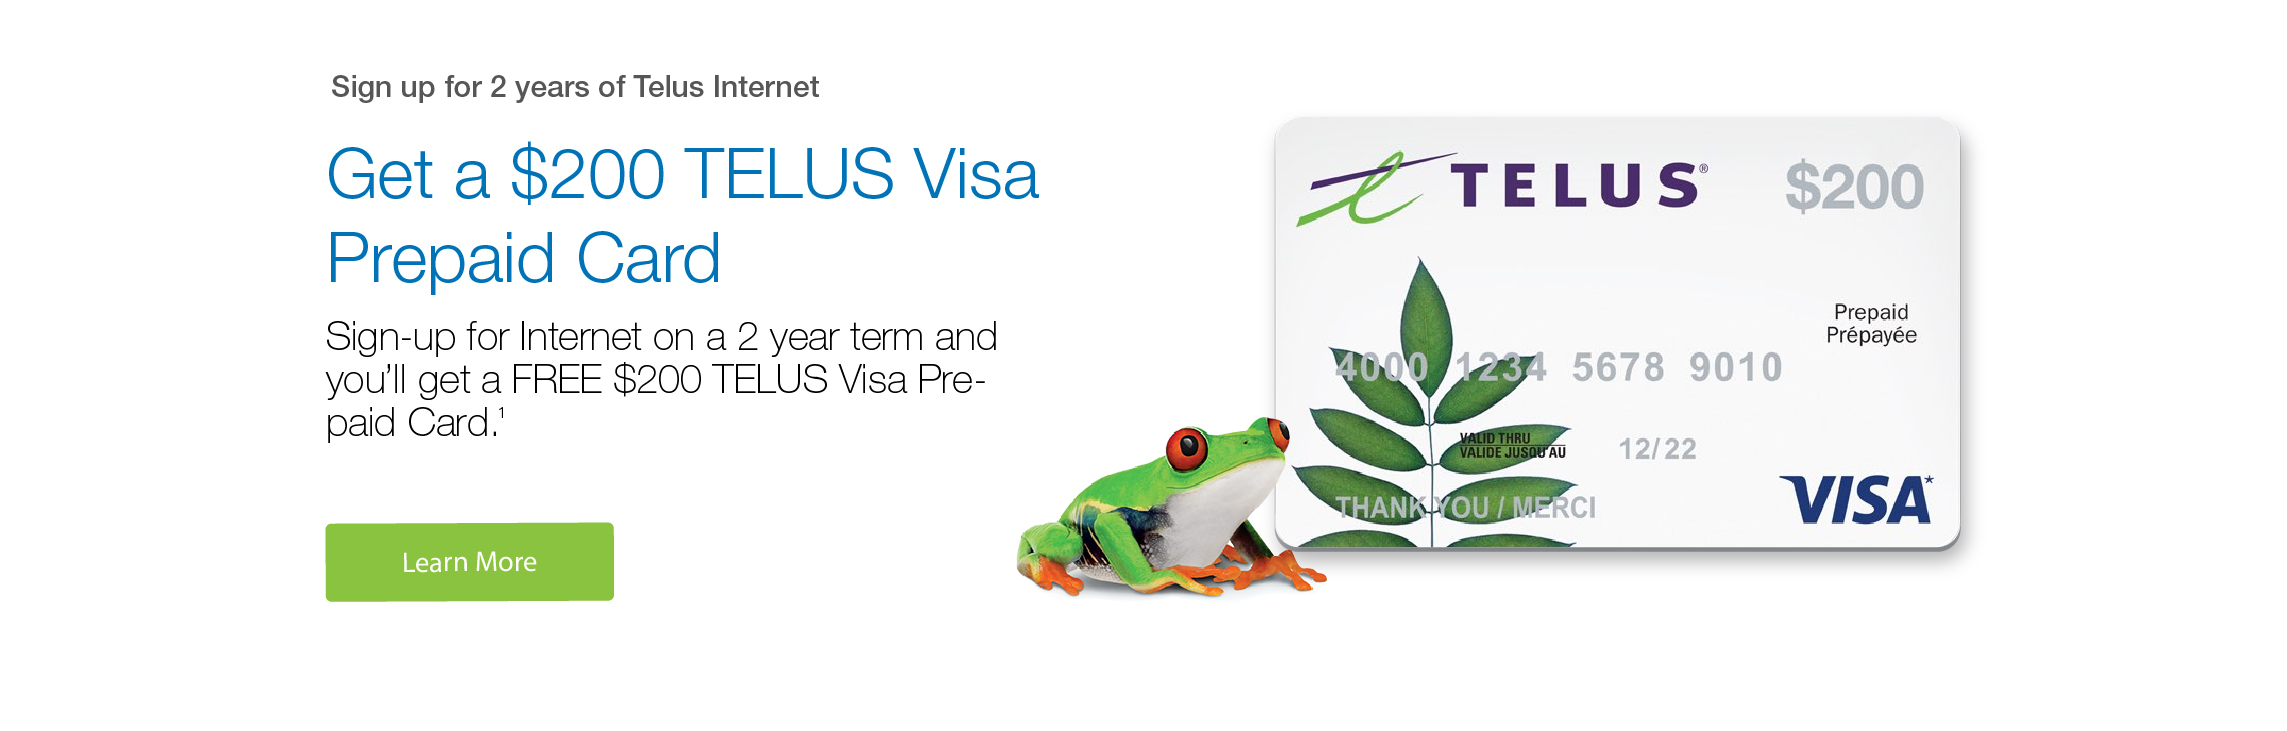 Sign up for 2 years and get a free VISA gift card